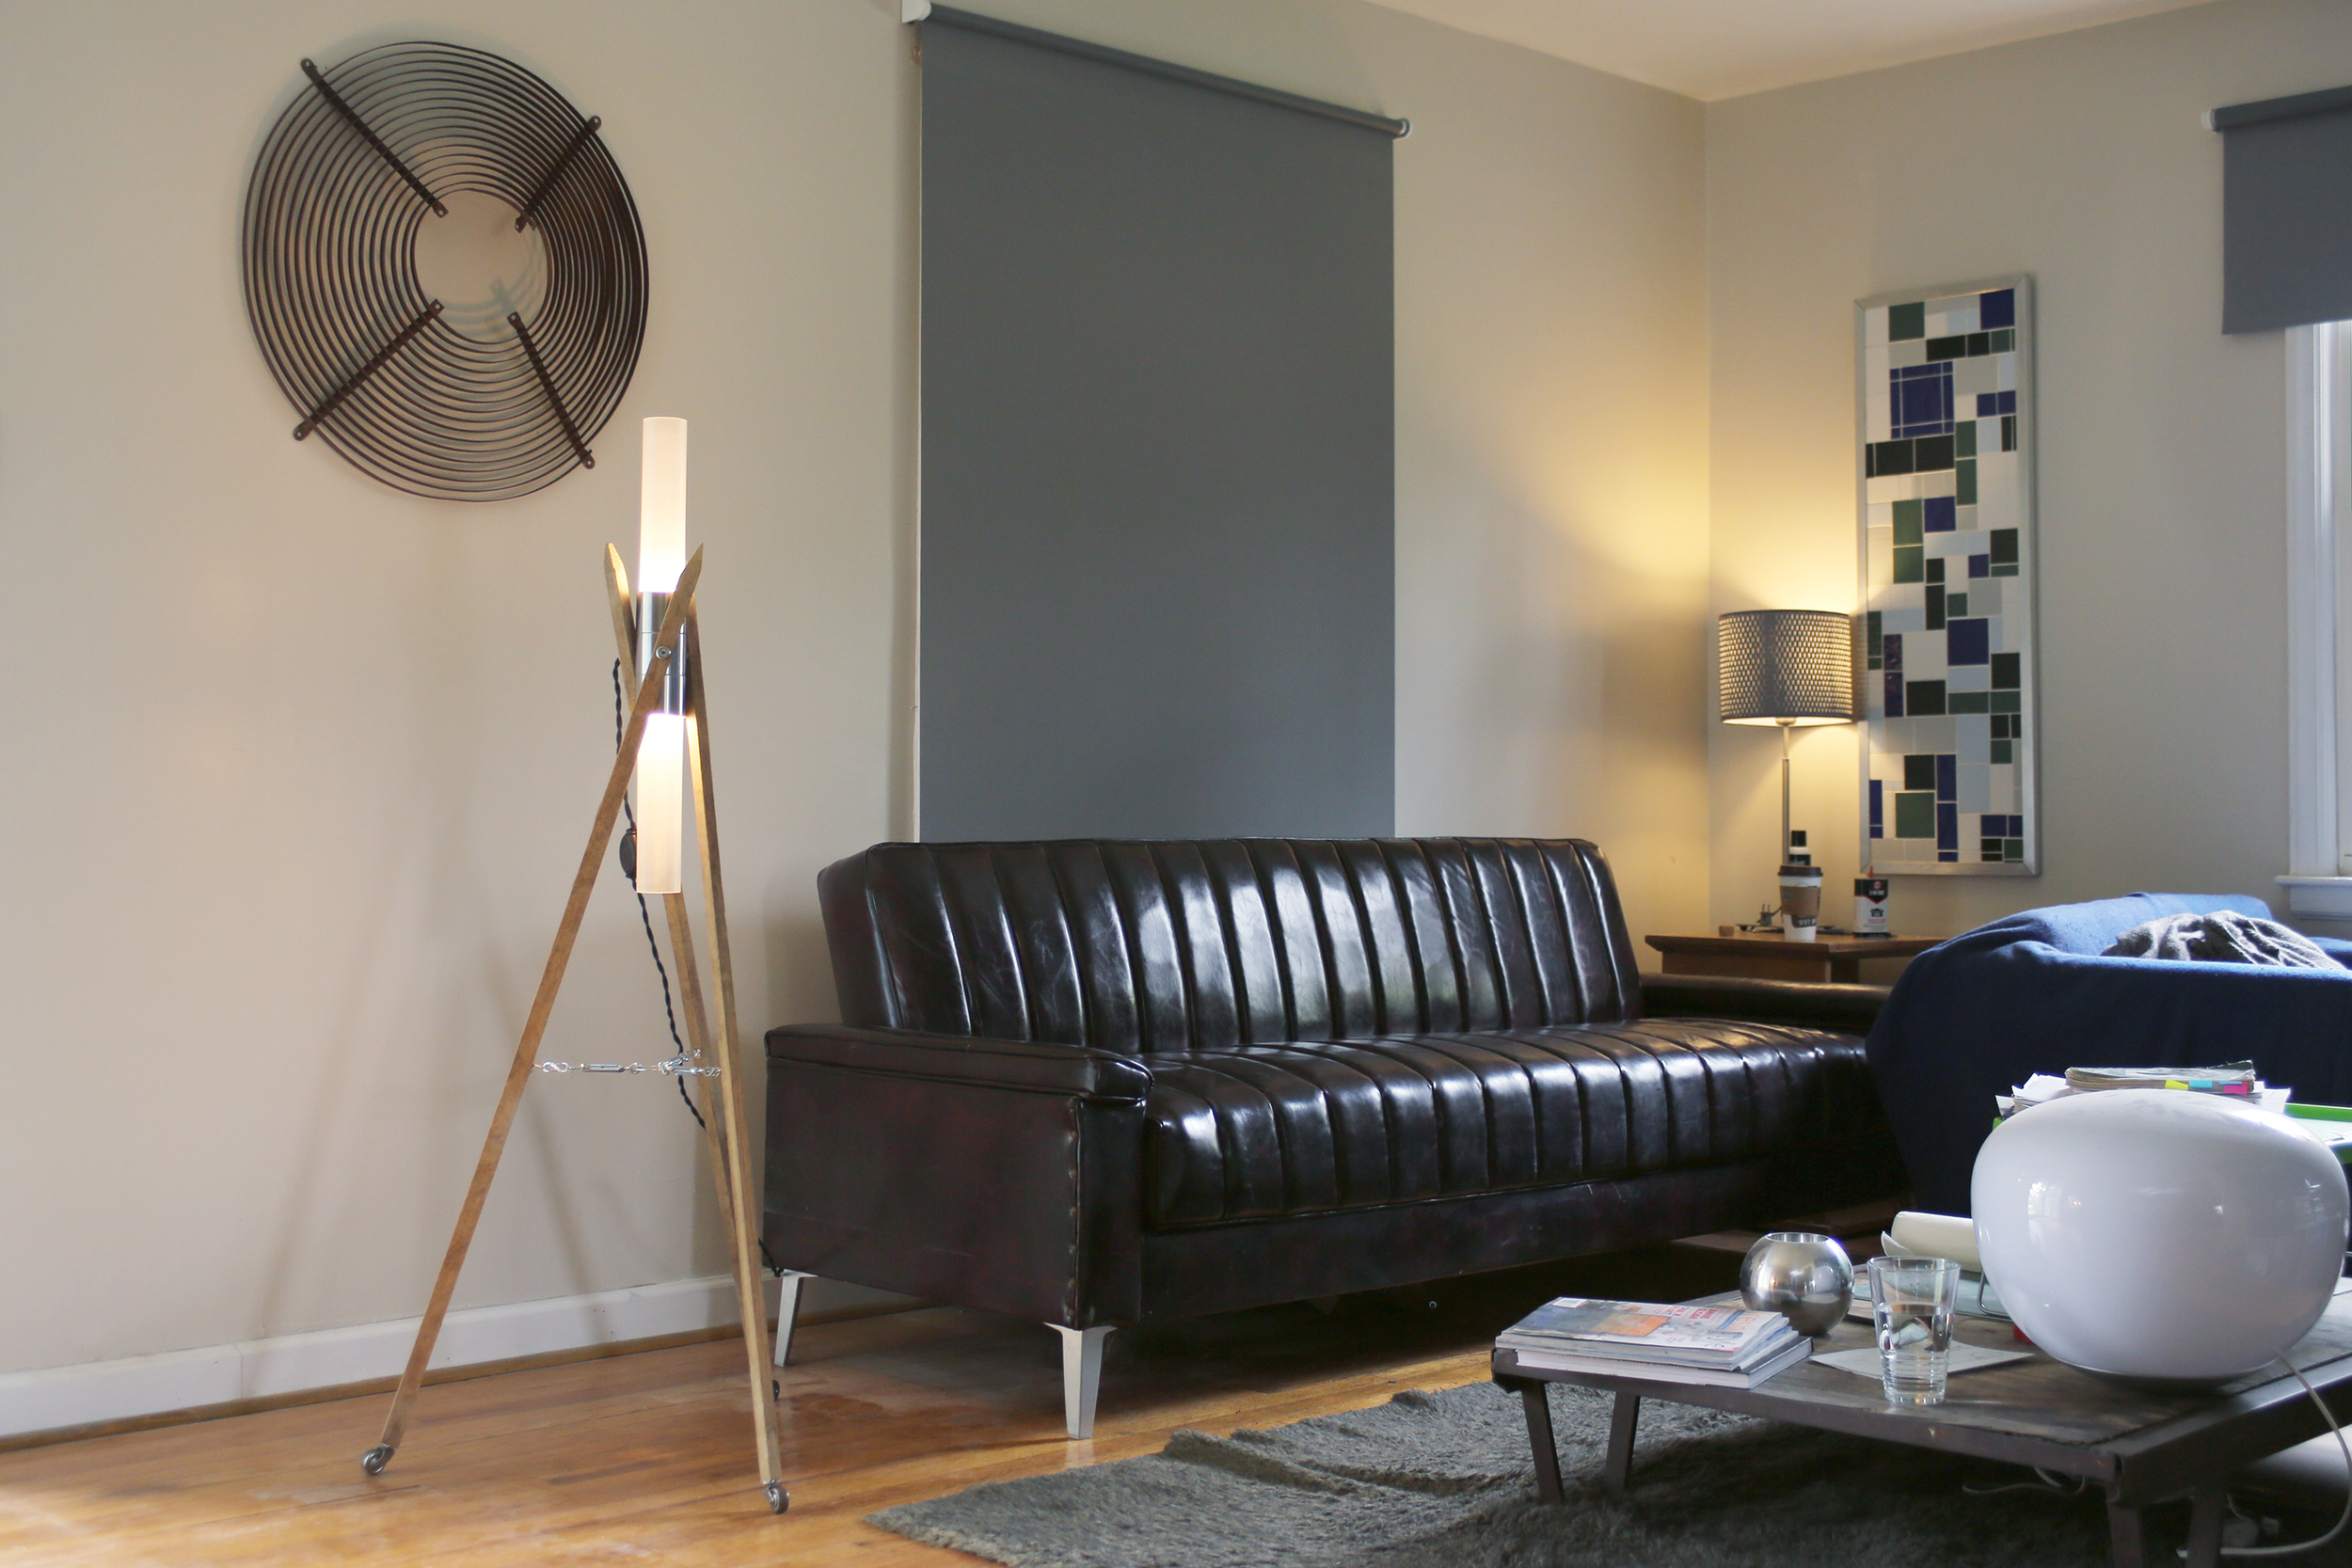 """Living space of Brian Bouwman featuring his new lamp the Namid or """"star dancer."""""""